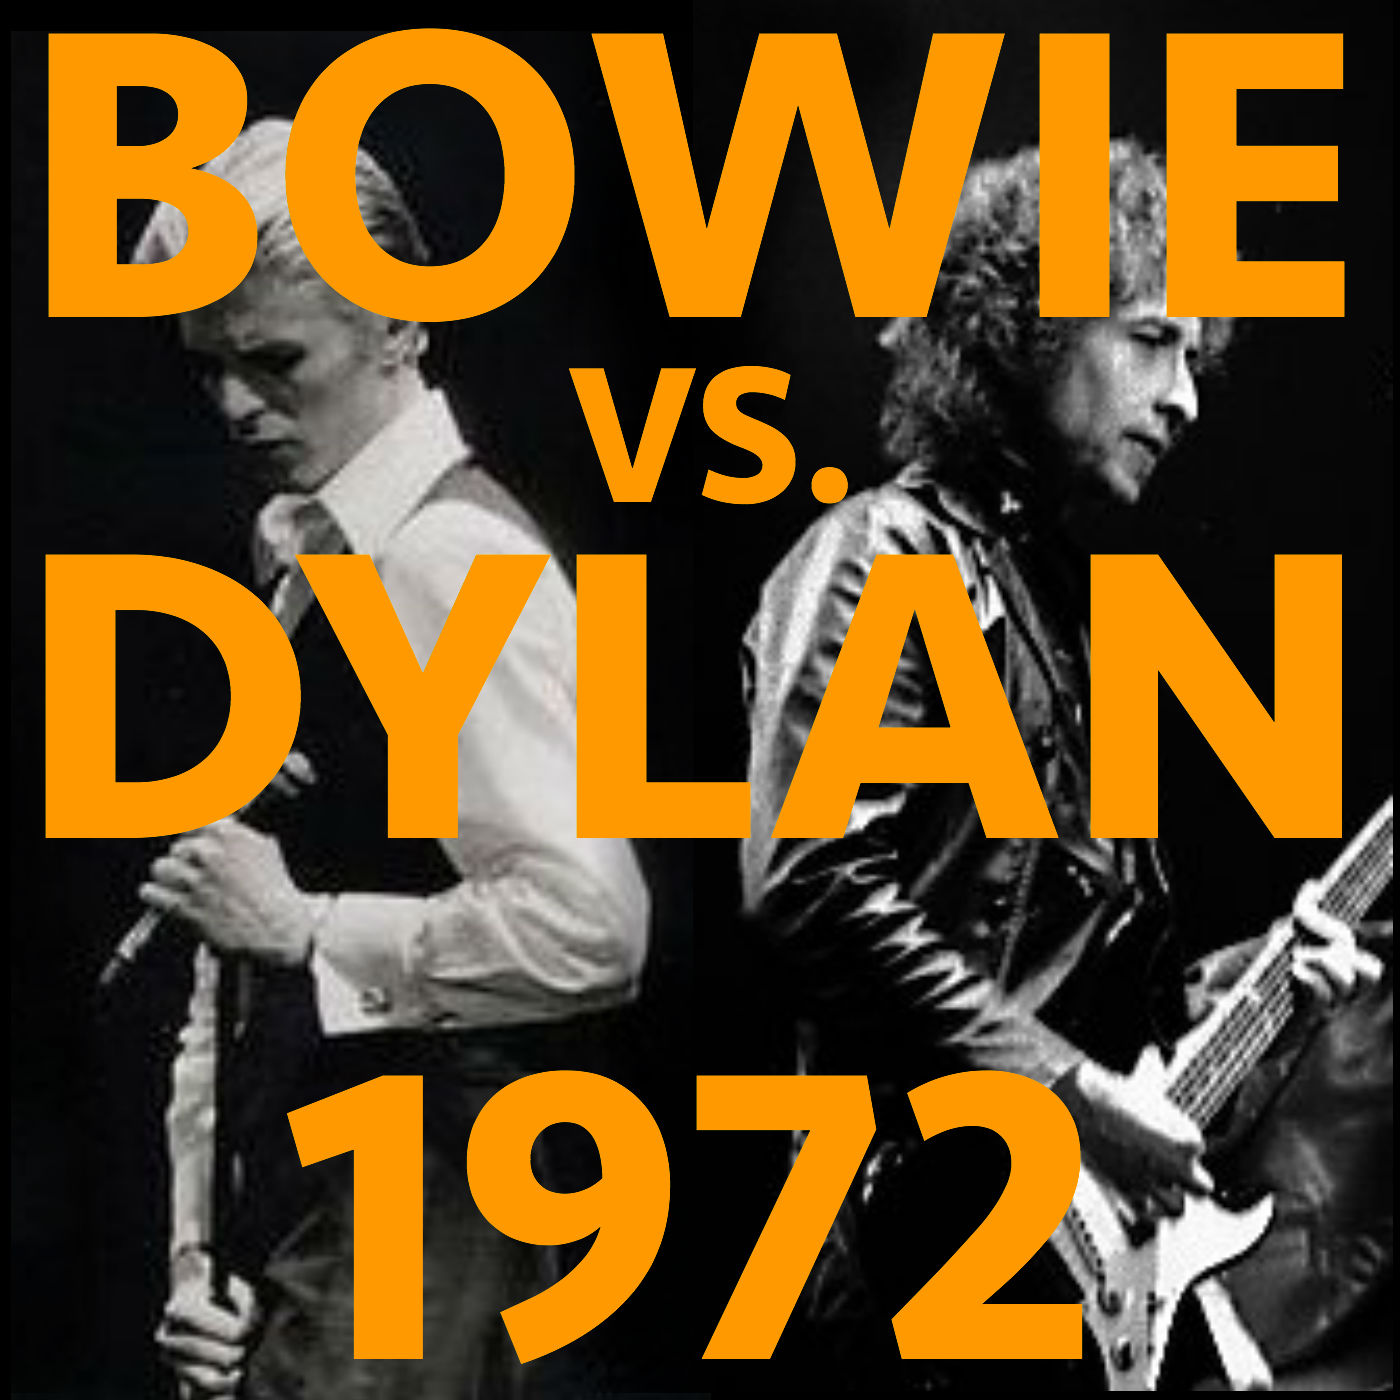 Ep34: 1972 - David Bowie Presents: The Rise and Fall of Ziggy